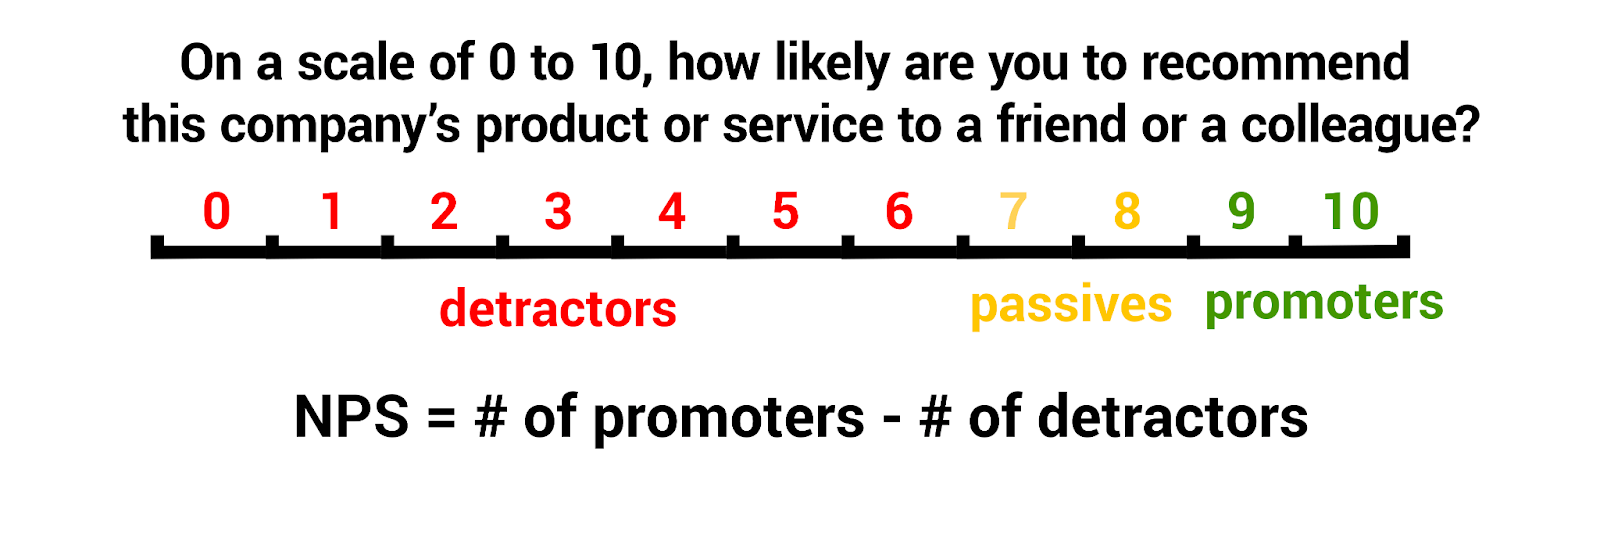 On a scale of 0 to 10, how likely are you to recommend this company's product or service to a friend or a colleague?   0-6=detractors.  7-8=passives   9-10=promoters       NPS= # of promoters - # of detractors